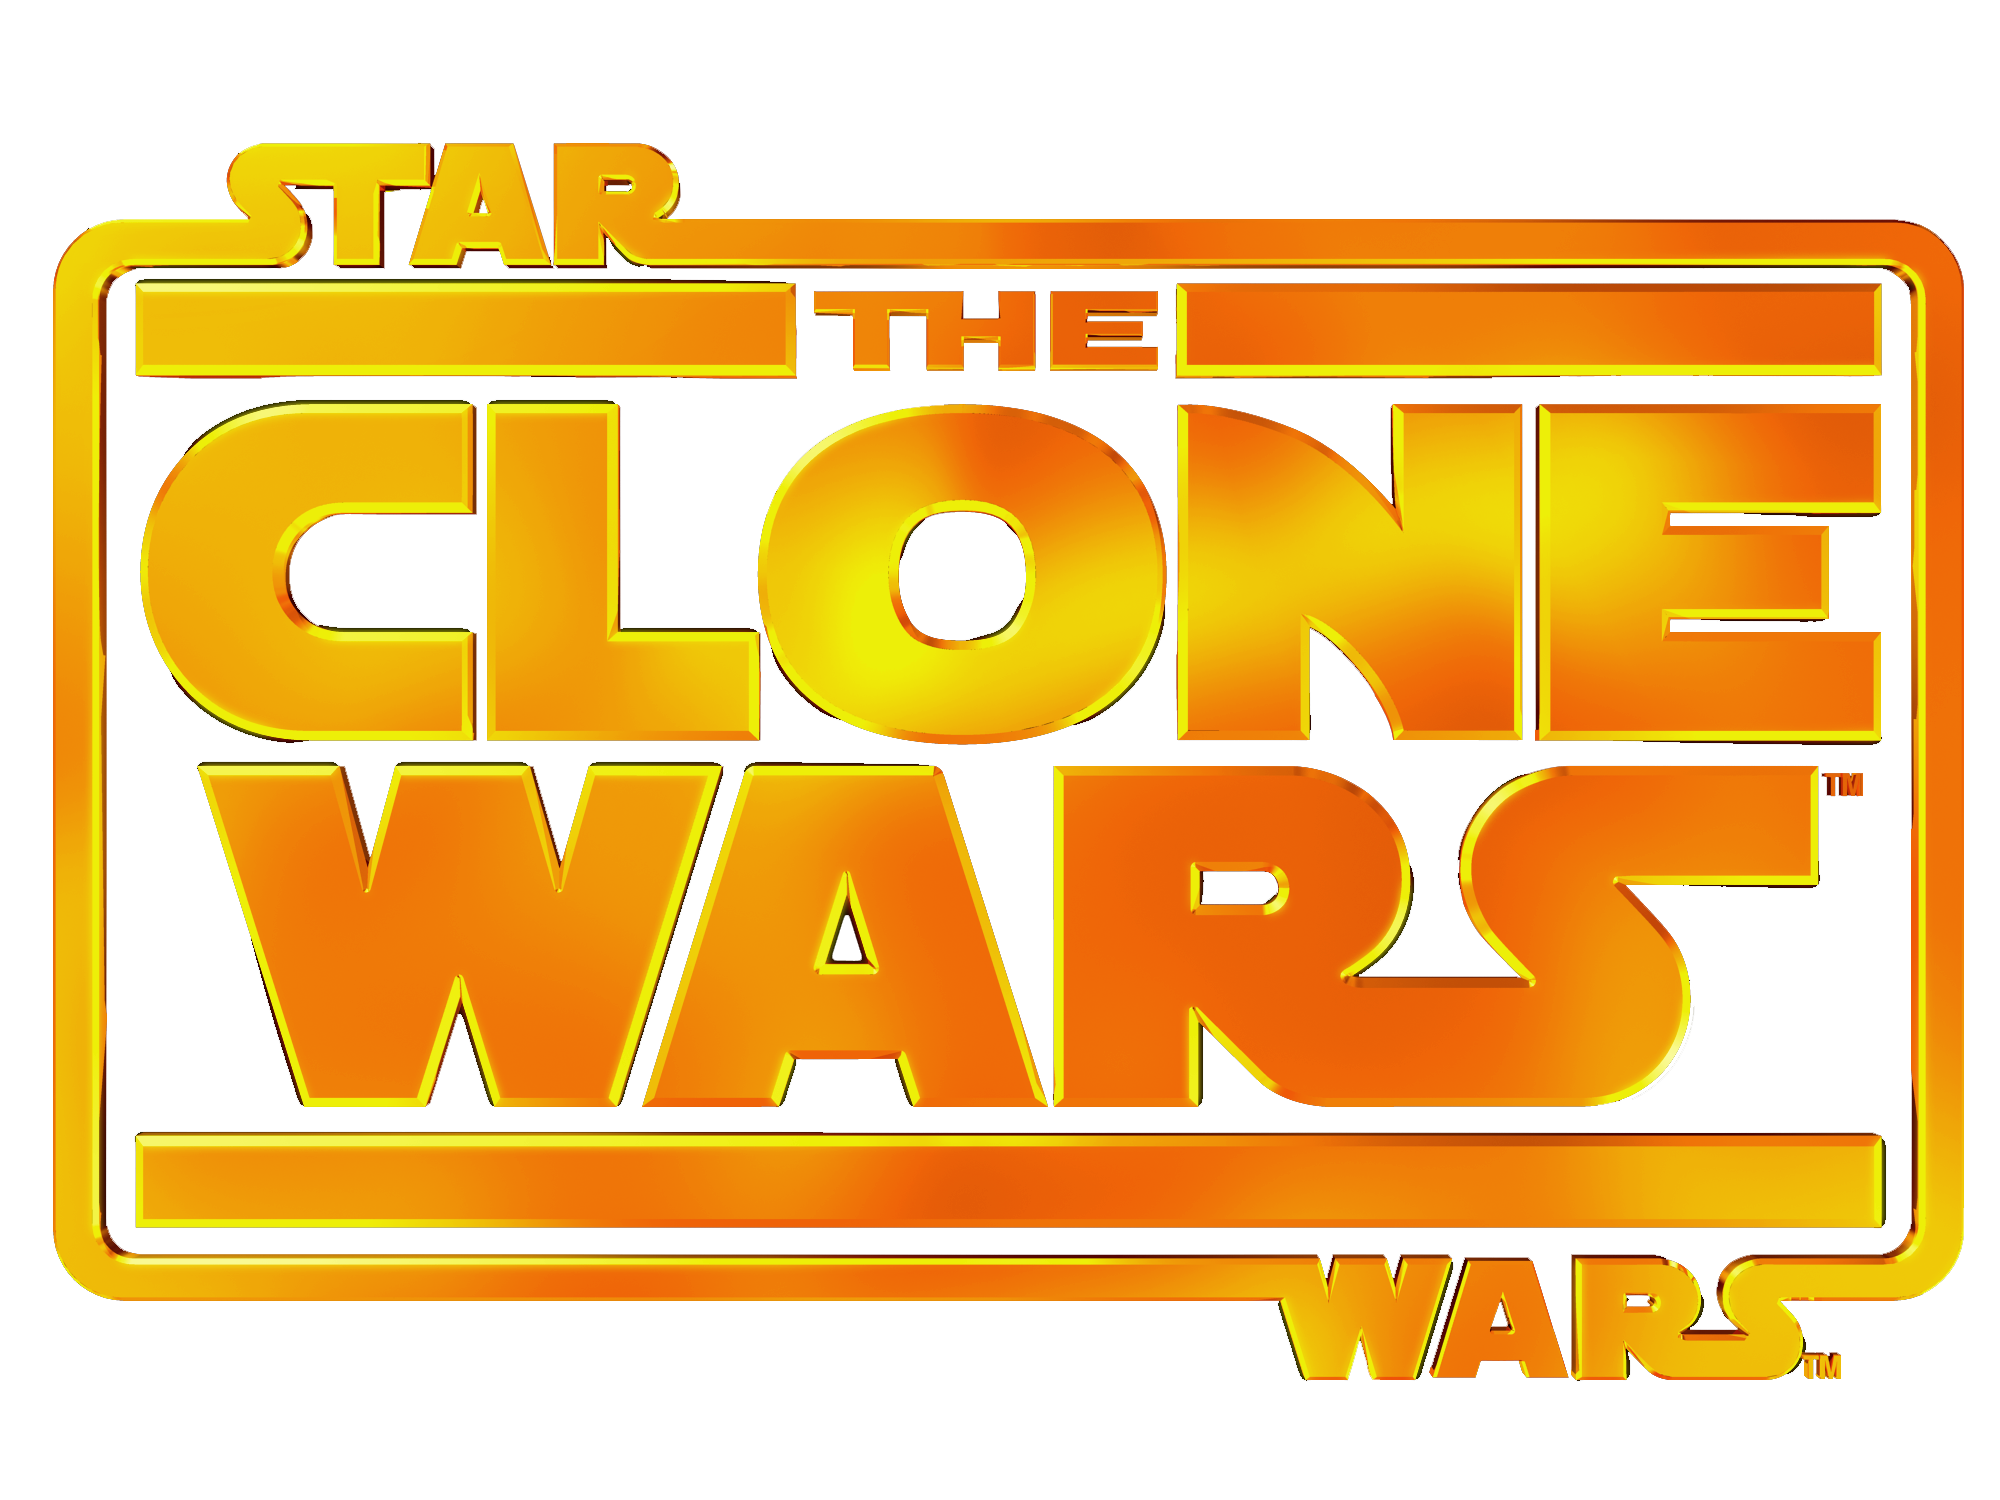 To Fans of Star Wars: The Clone Wars: Thank You.